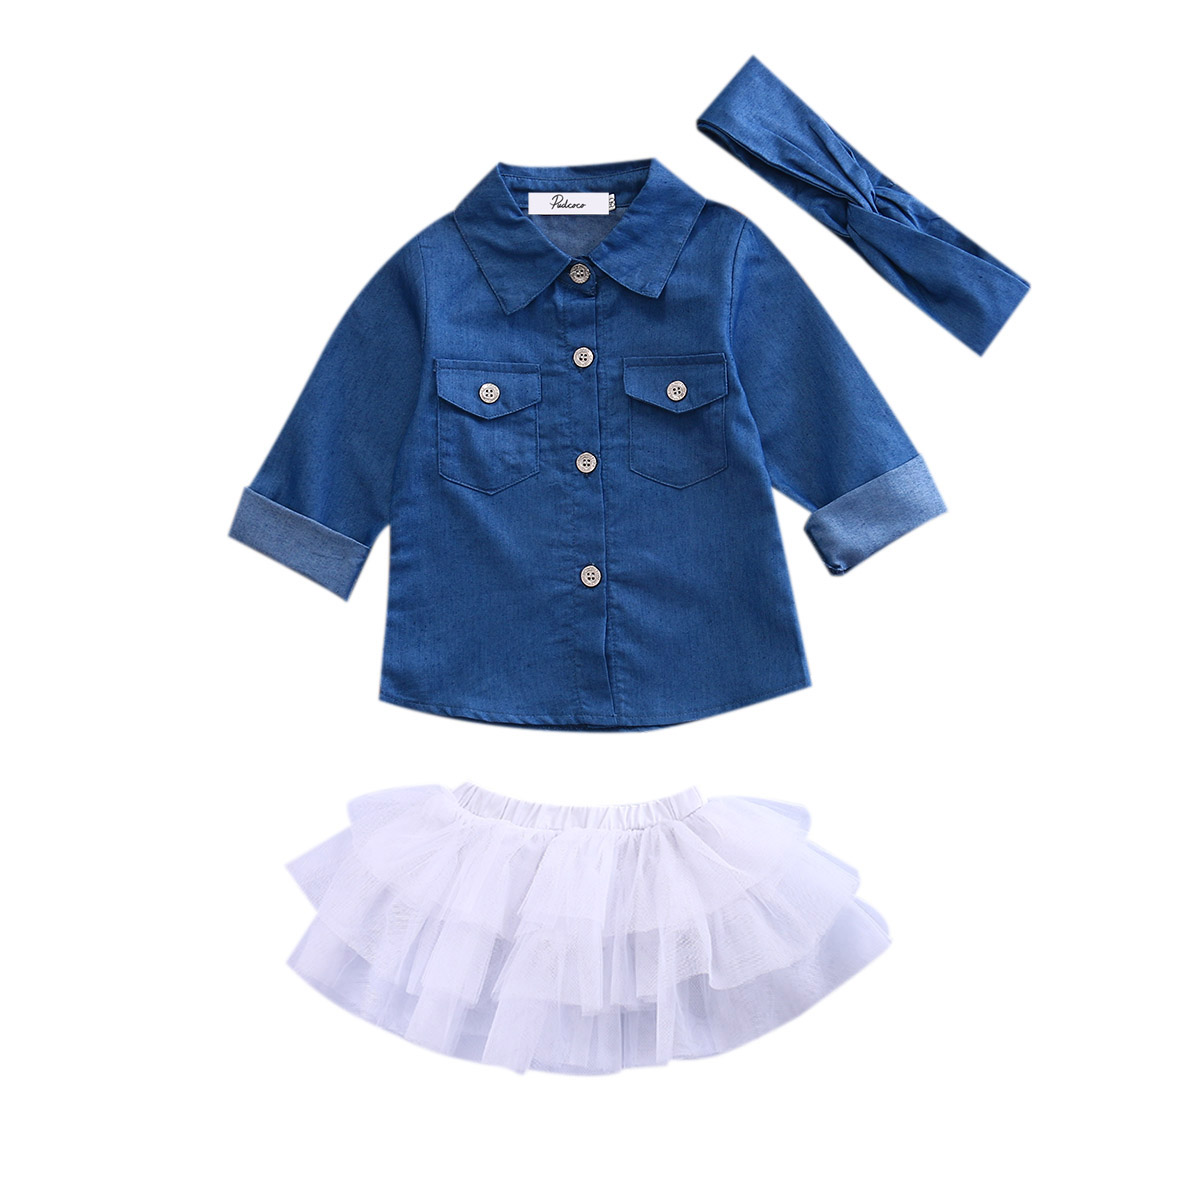 Toddler Kids Baby Girl Clothes Set Denim Tops Shirt Tutu Skirts Ruffles Cute Party 3pcs Outfits Clothing Set Girls 2017 cute kids girl clothing set off shoulder lace white t shirt tops denim pant jeans 2pcs children clothes 2 7y